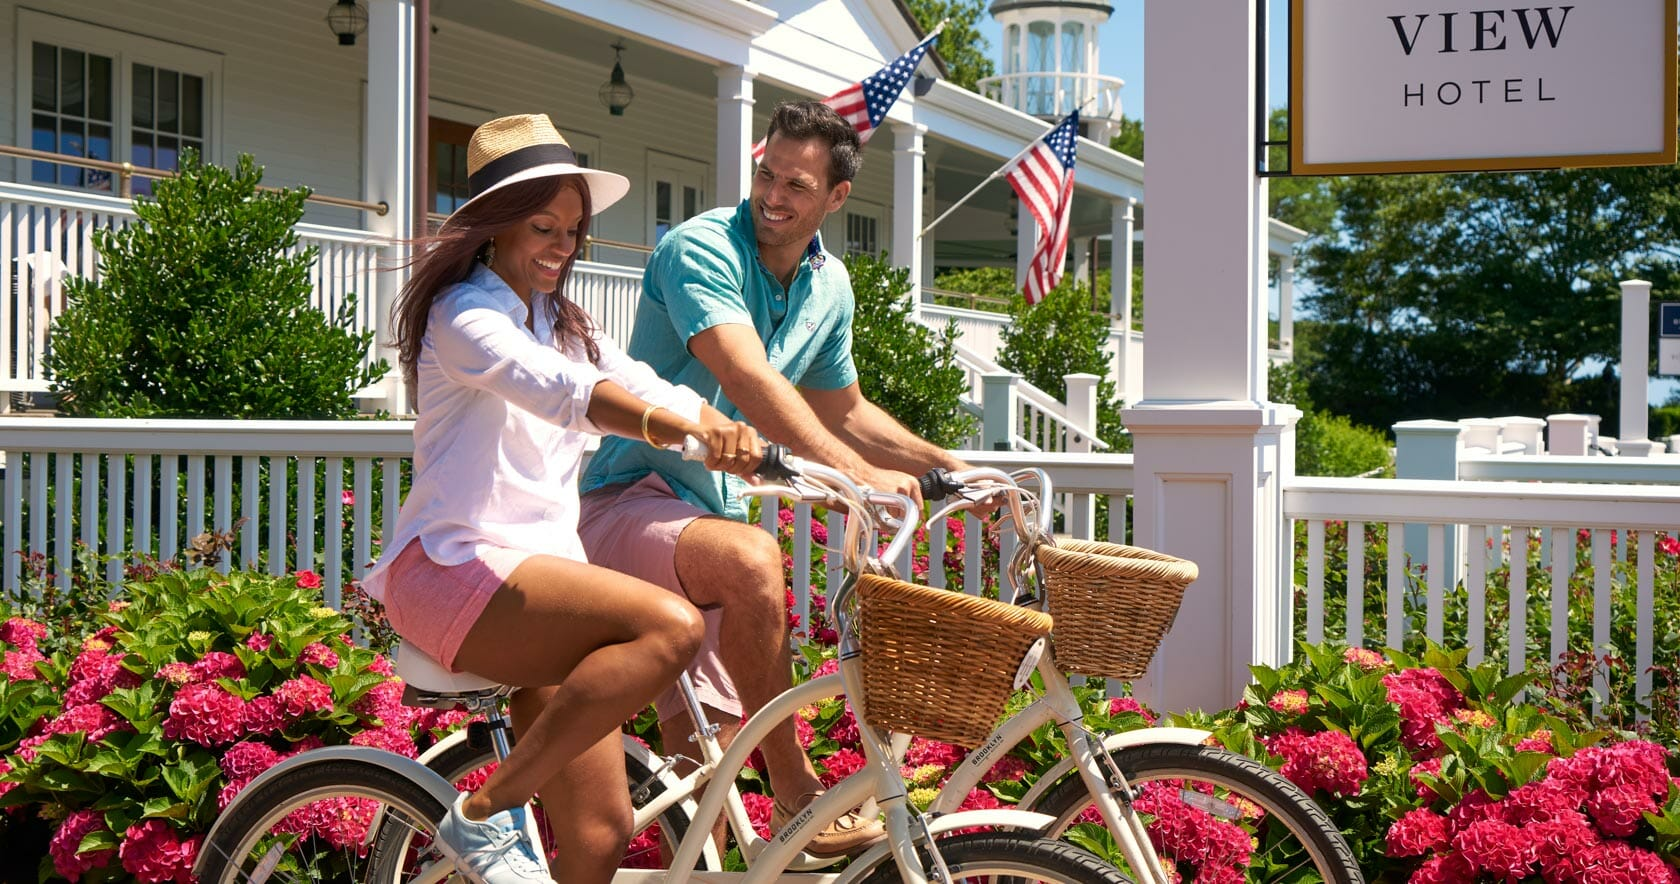 A couple riding bikes at the Harbor View Hotel